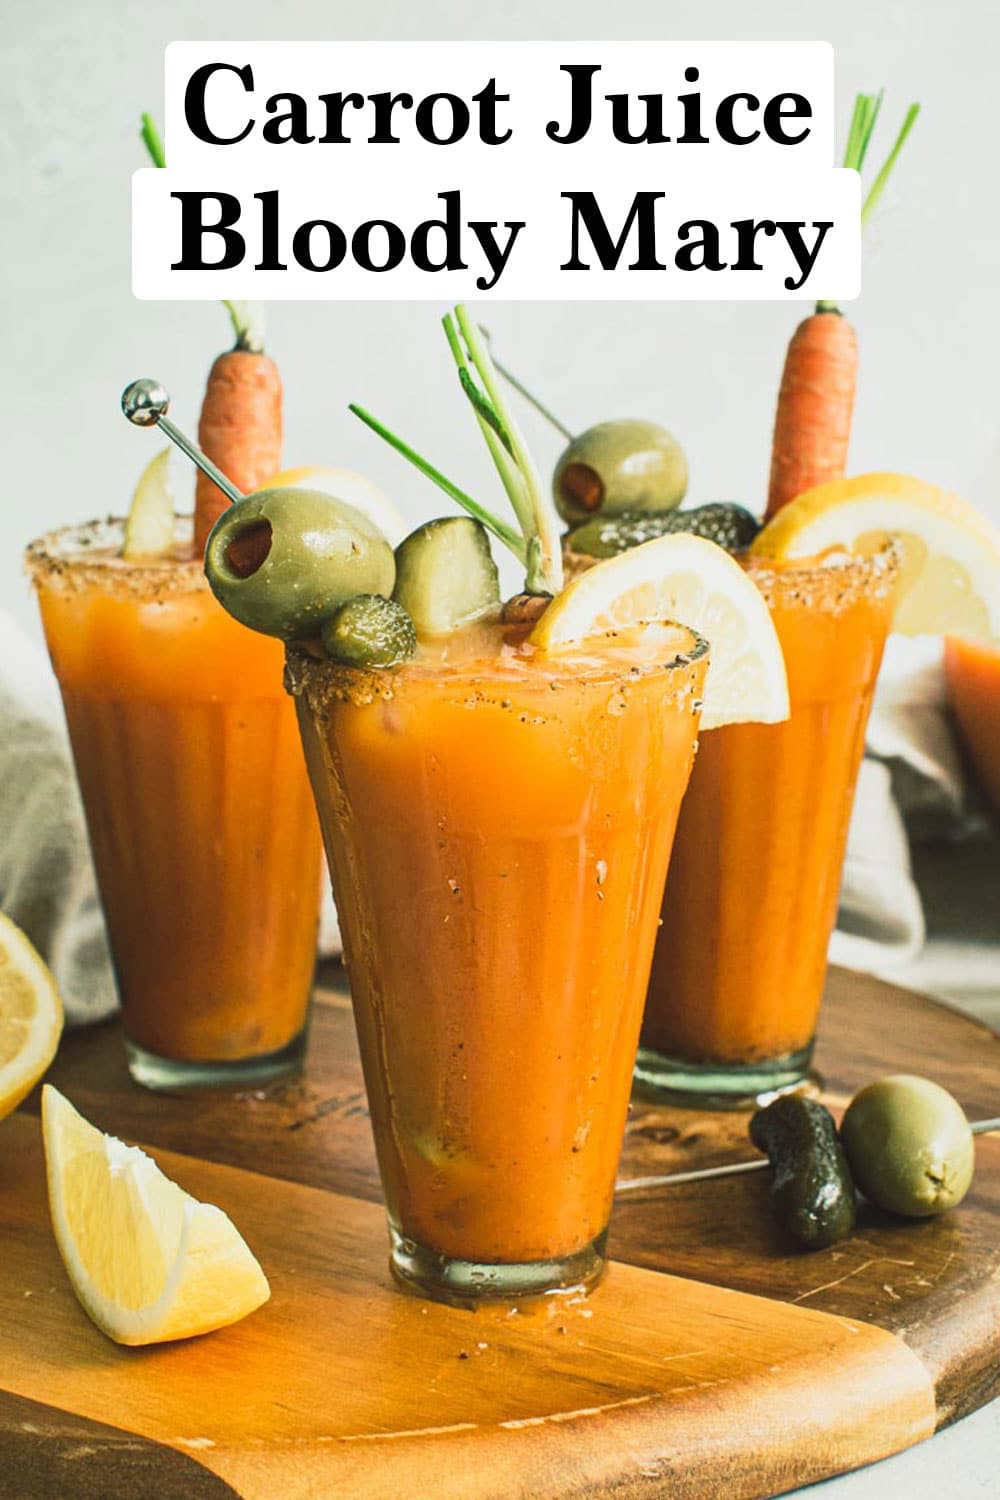 Carrot juice Bloody Mary in glasses topped with garnishes on a wooden board.